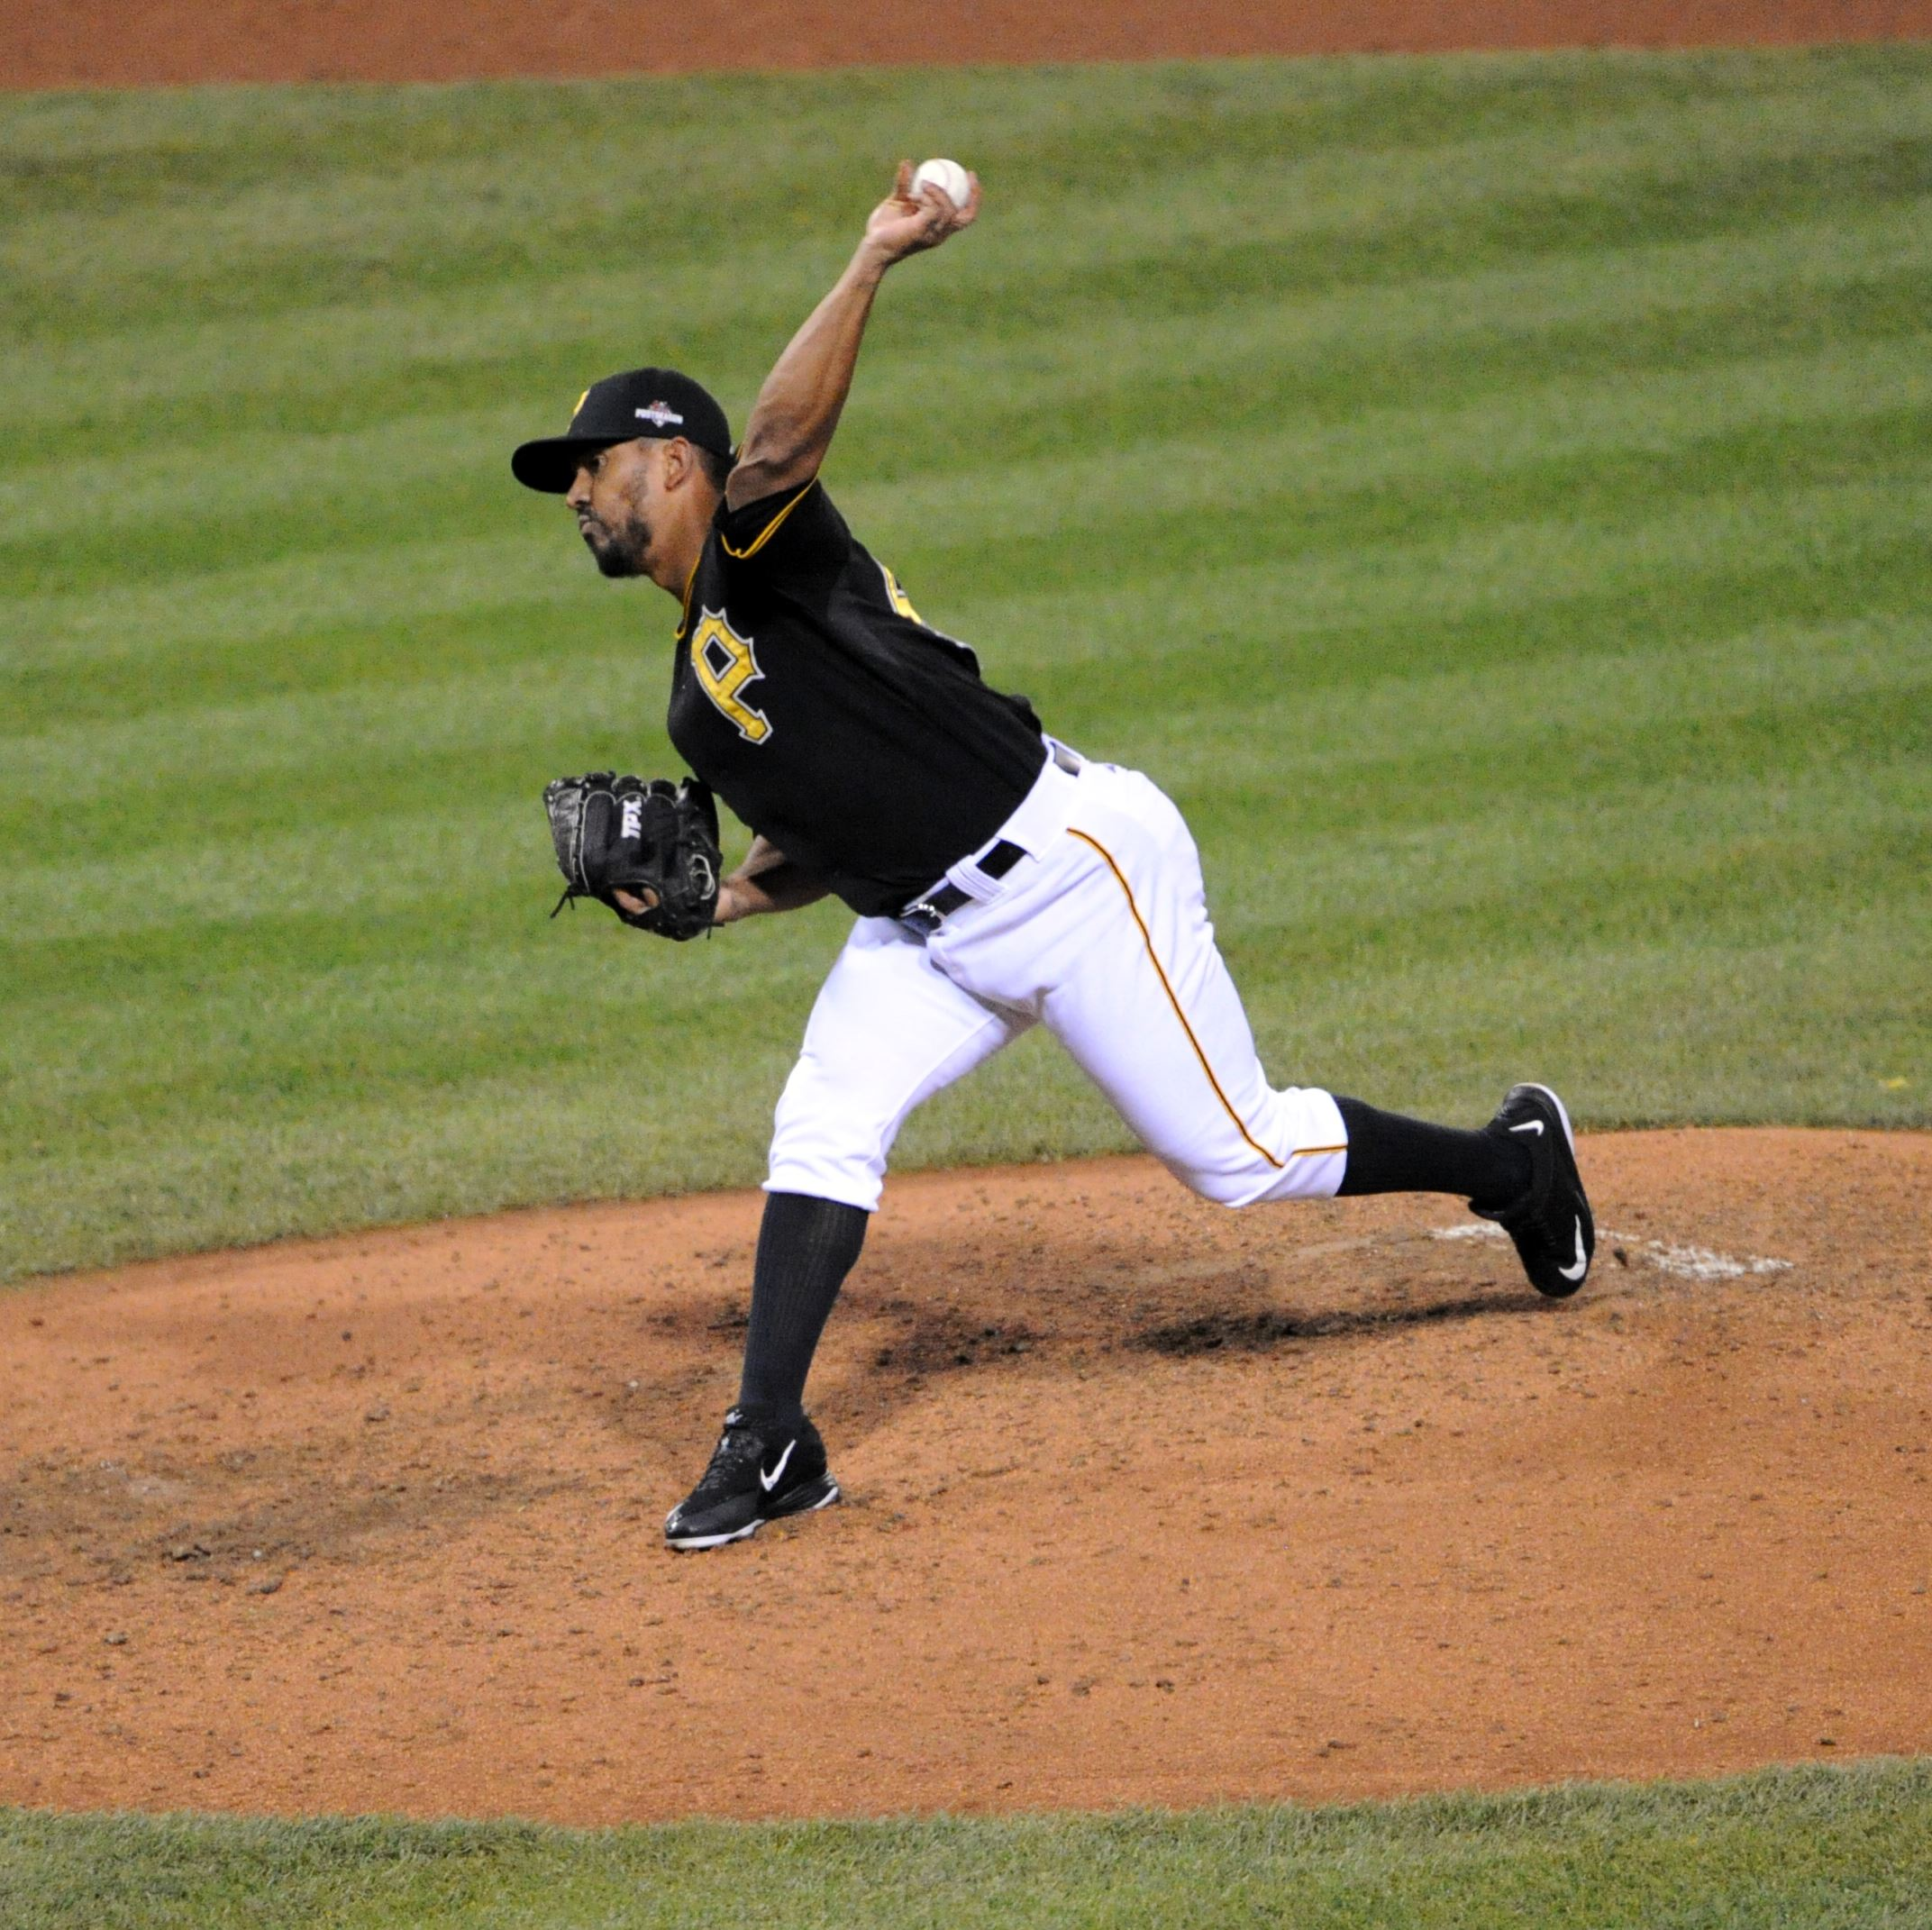 Pirates notebook: Reliever Bastardo's tempo throws off hitters